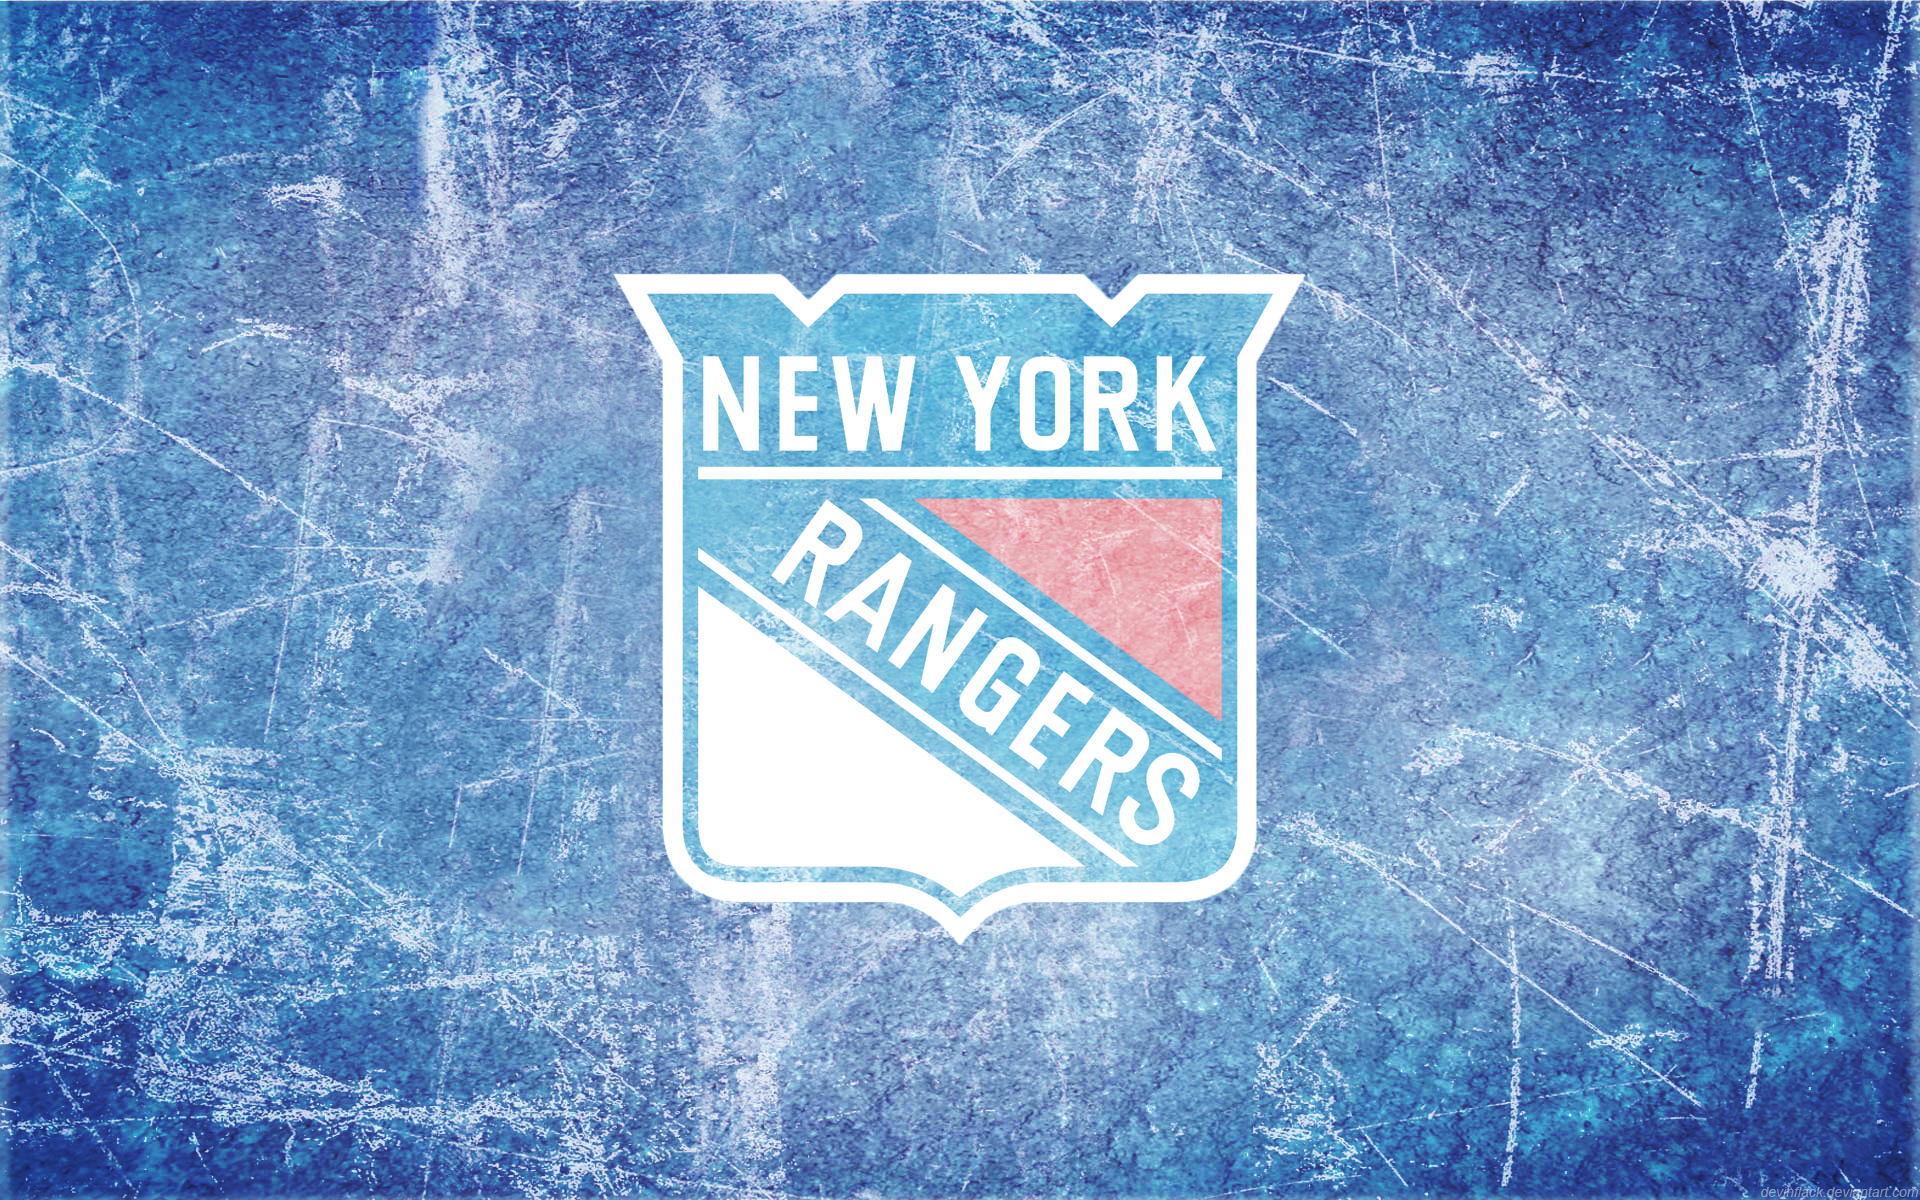 New York Rangers HD Wallpaper | Background Image | 1920x1200 | ID:983372 - Wallpaper Abyss